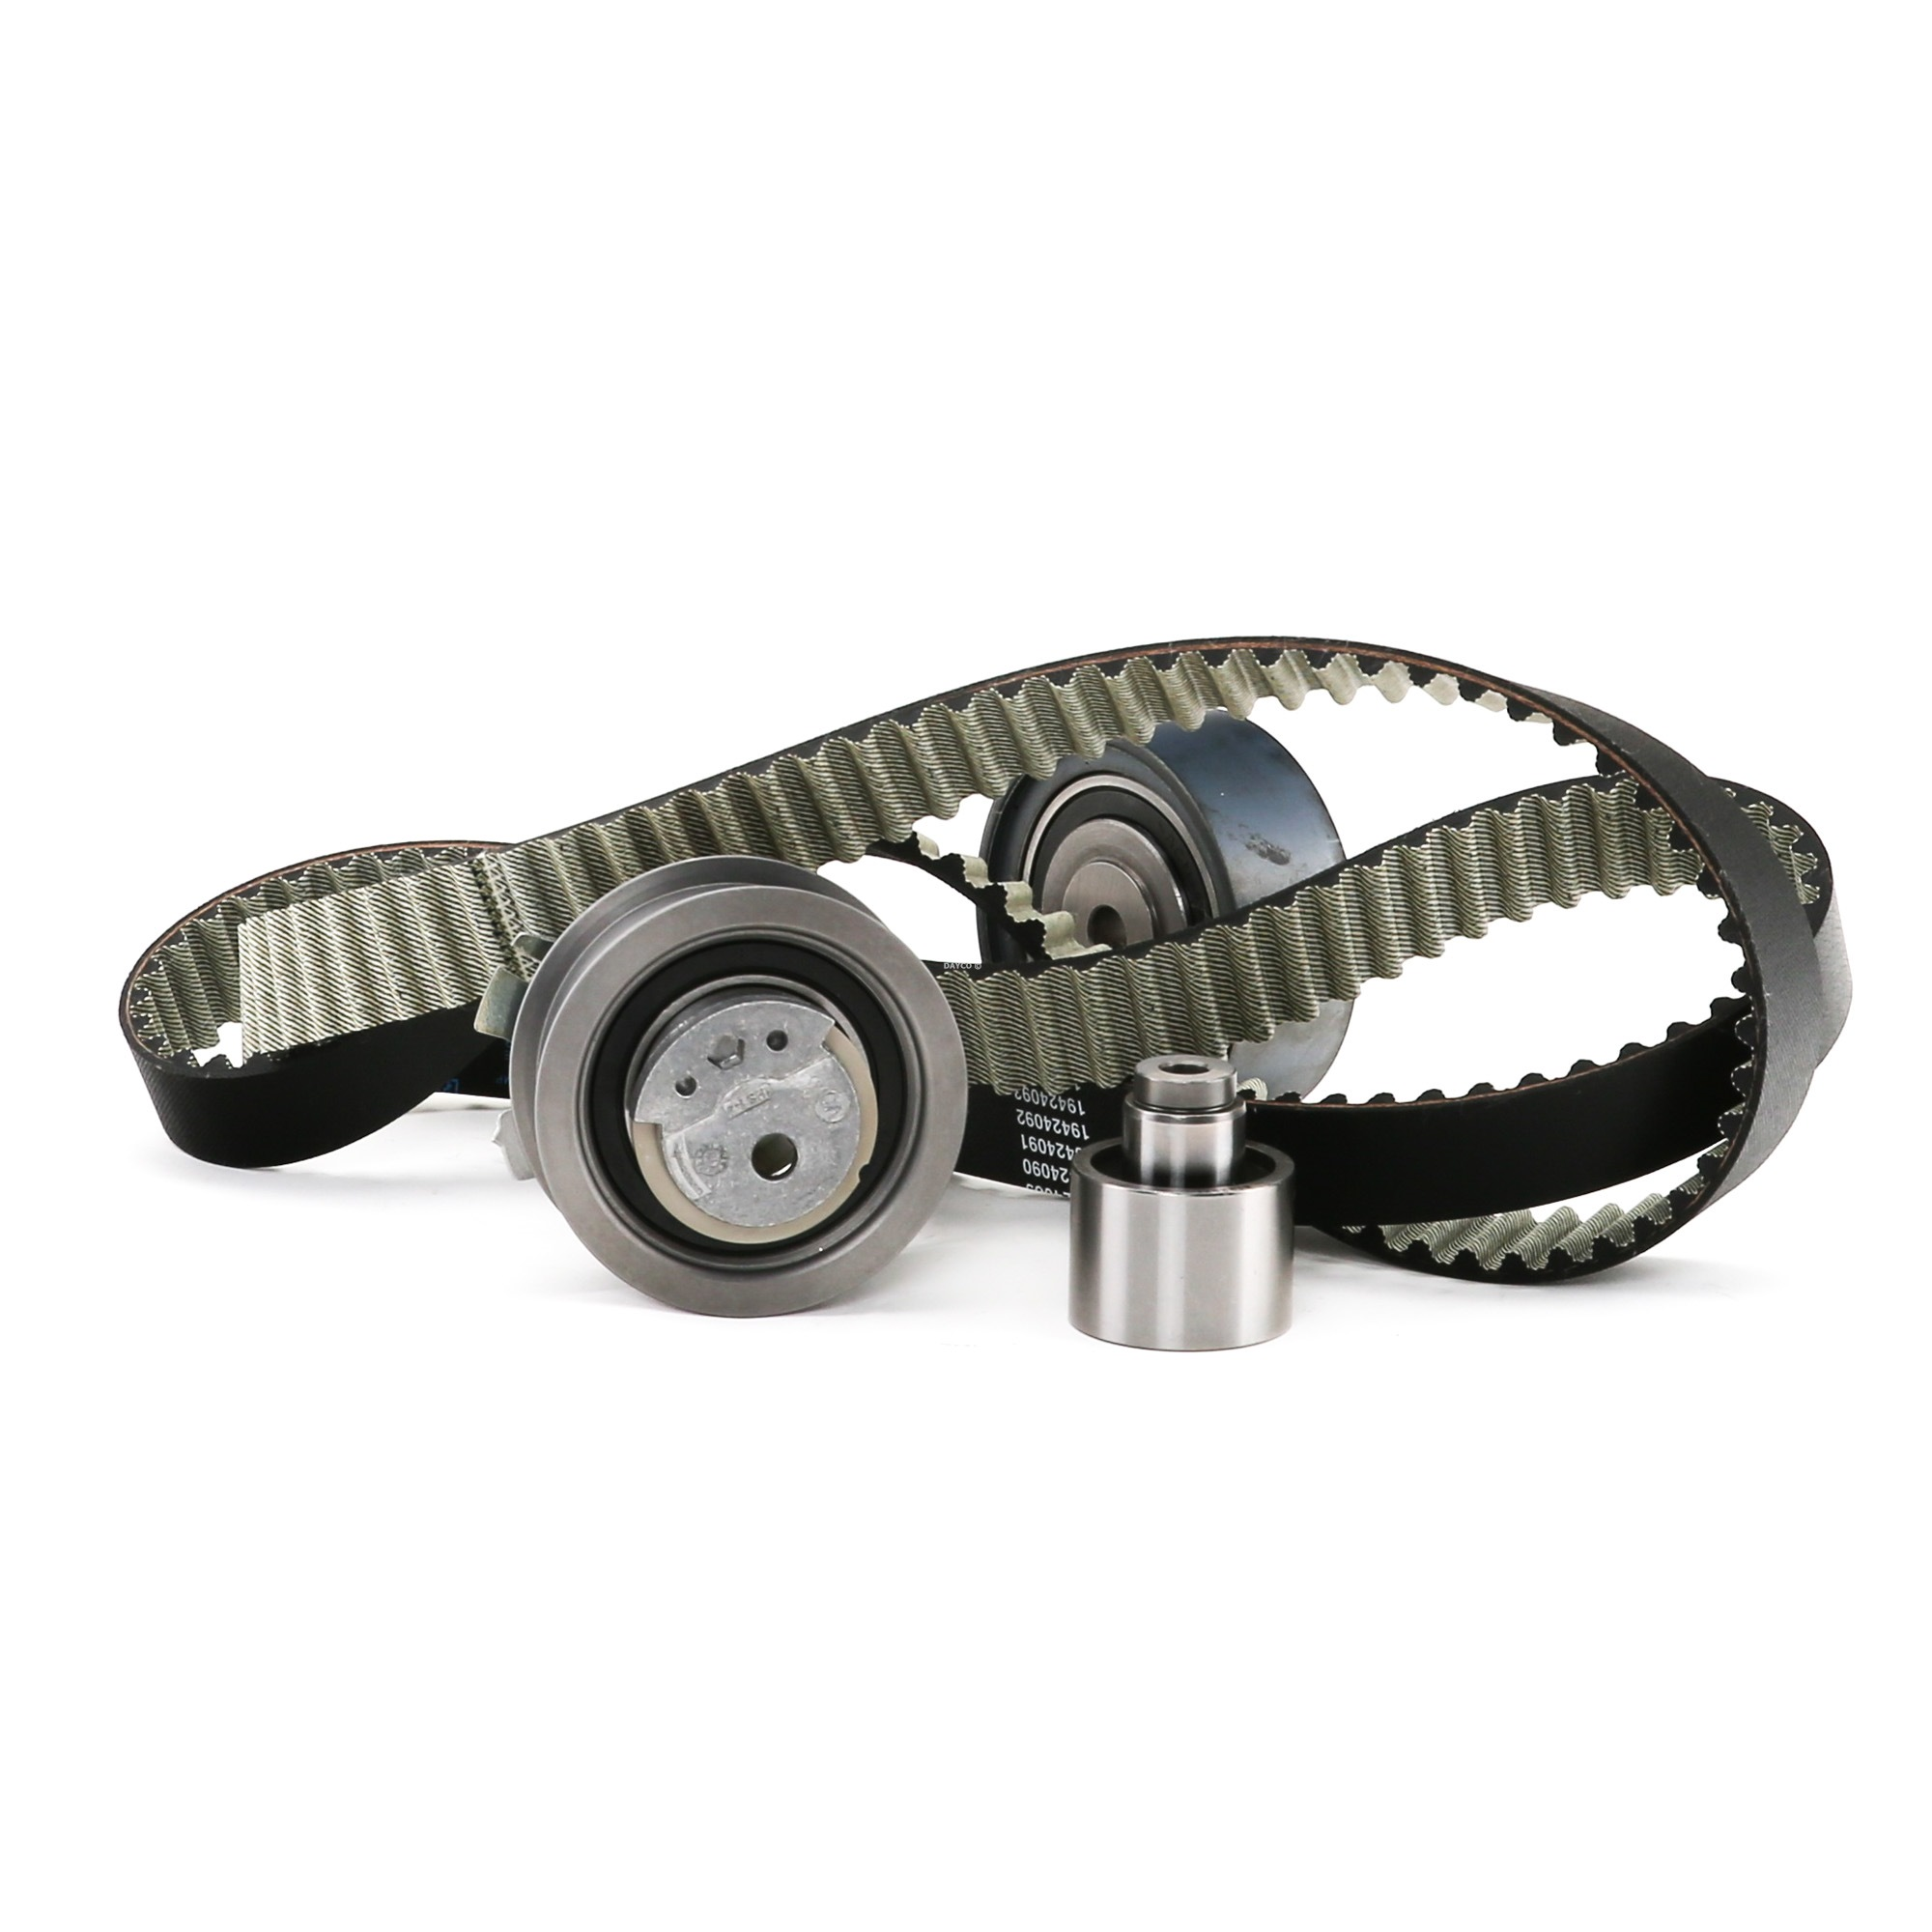 Car spare parts SKODA RAPID 2012: Timing Belt Set DAYCO KTB788 at a discount — buy now!